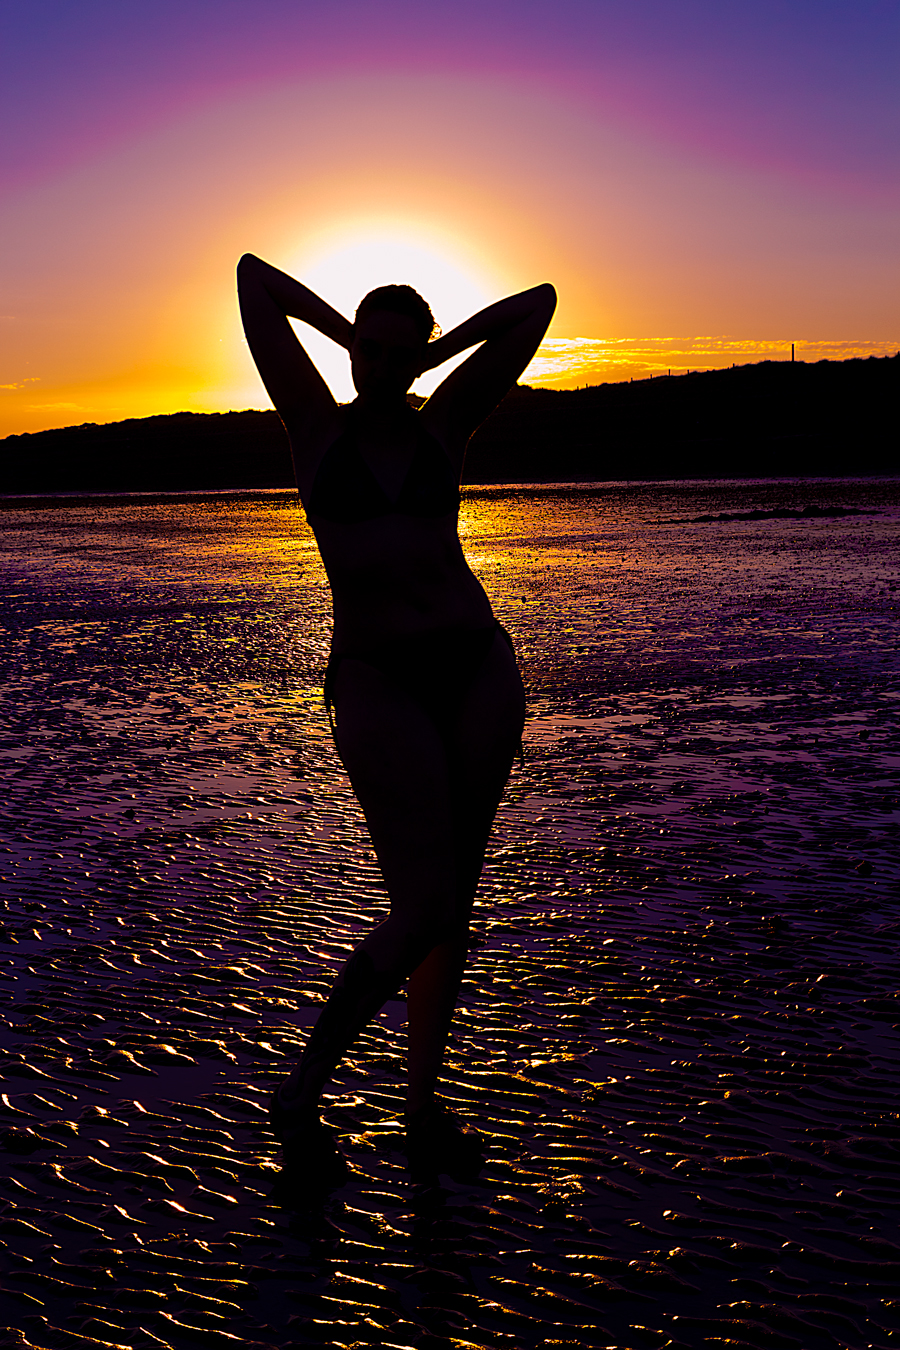 Sunset Silhouette / Photography by Mel Hathaway, Model Cosmic Starlight / Uploaded 23rd July 2016 @ 05:08 PM